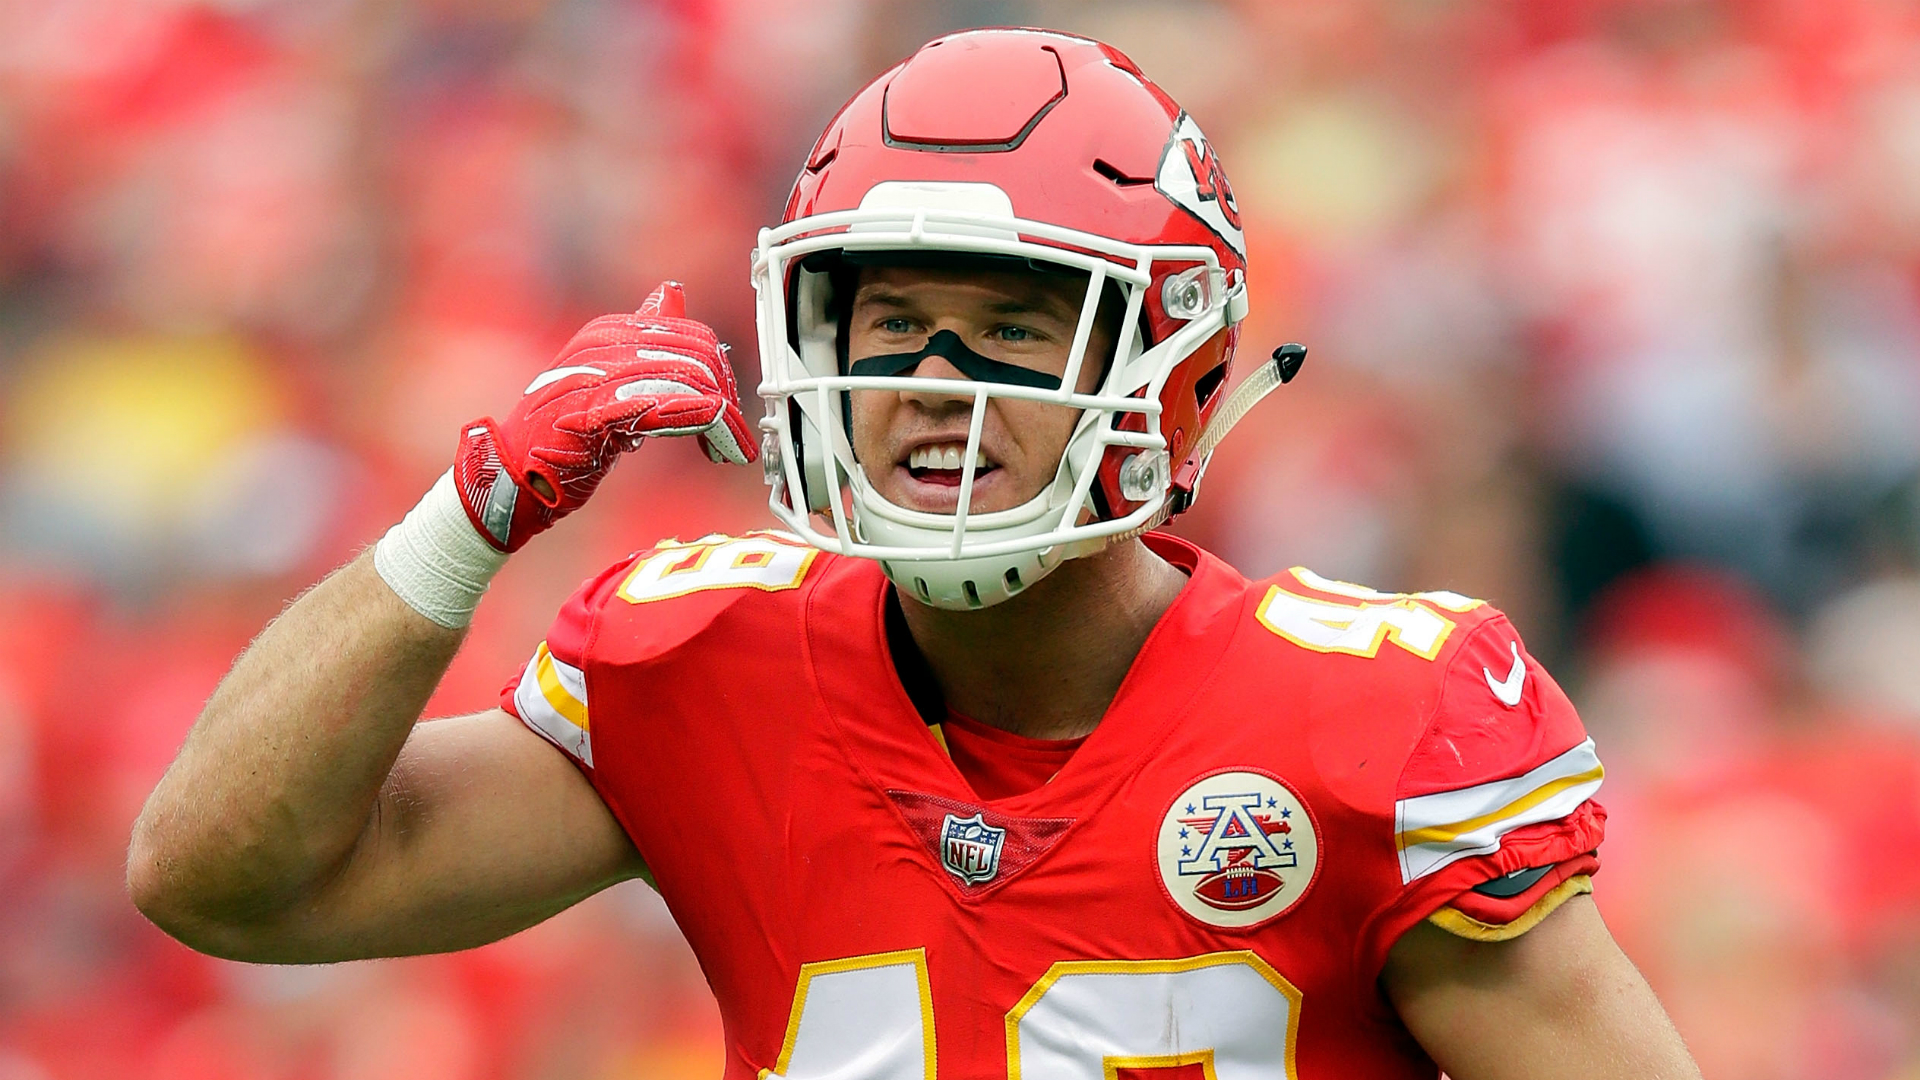 Did Chiefs Daniel Sorensen commit helmet-to-helmet penalty against Browns on controversial touchback